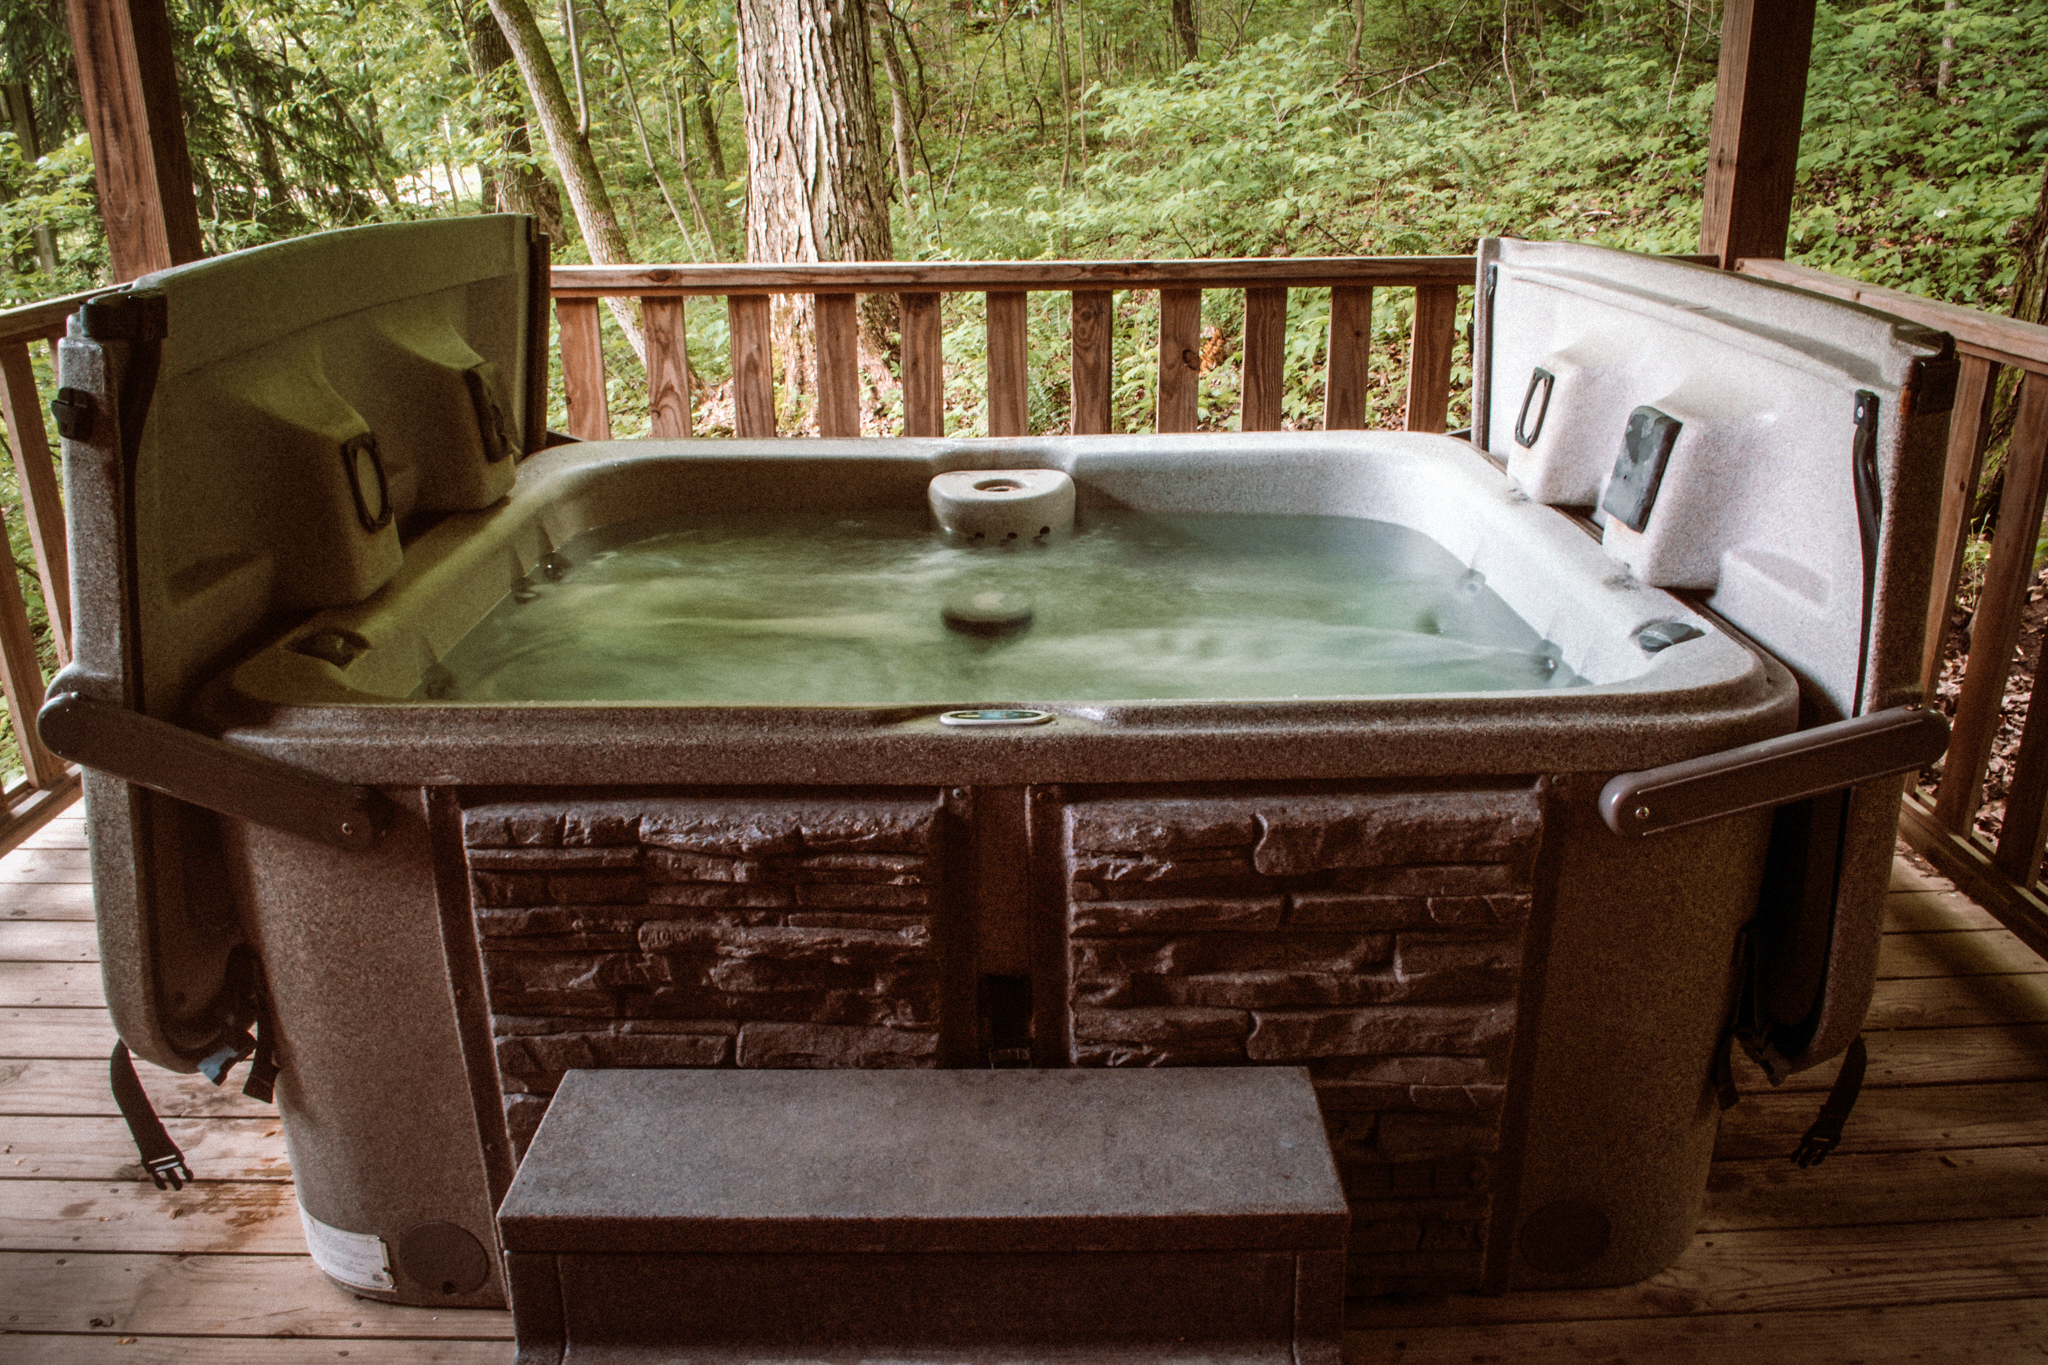 Hot Tub - Hot Tub for 2.